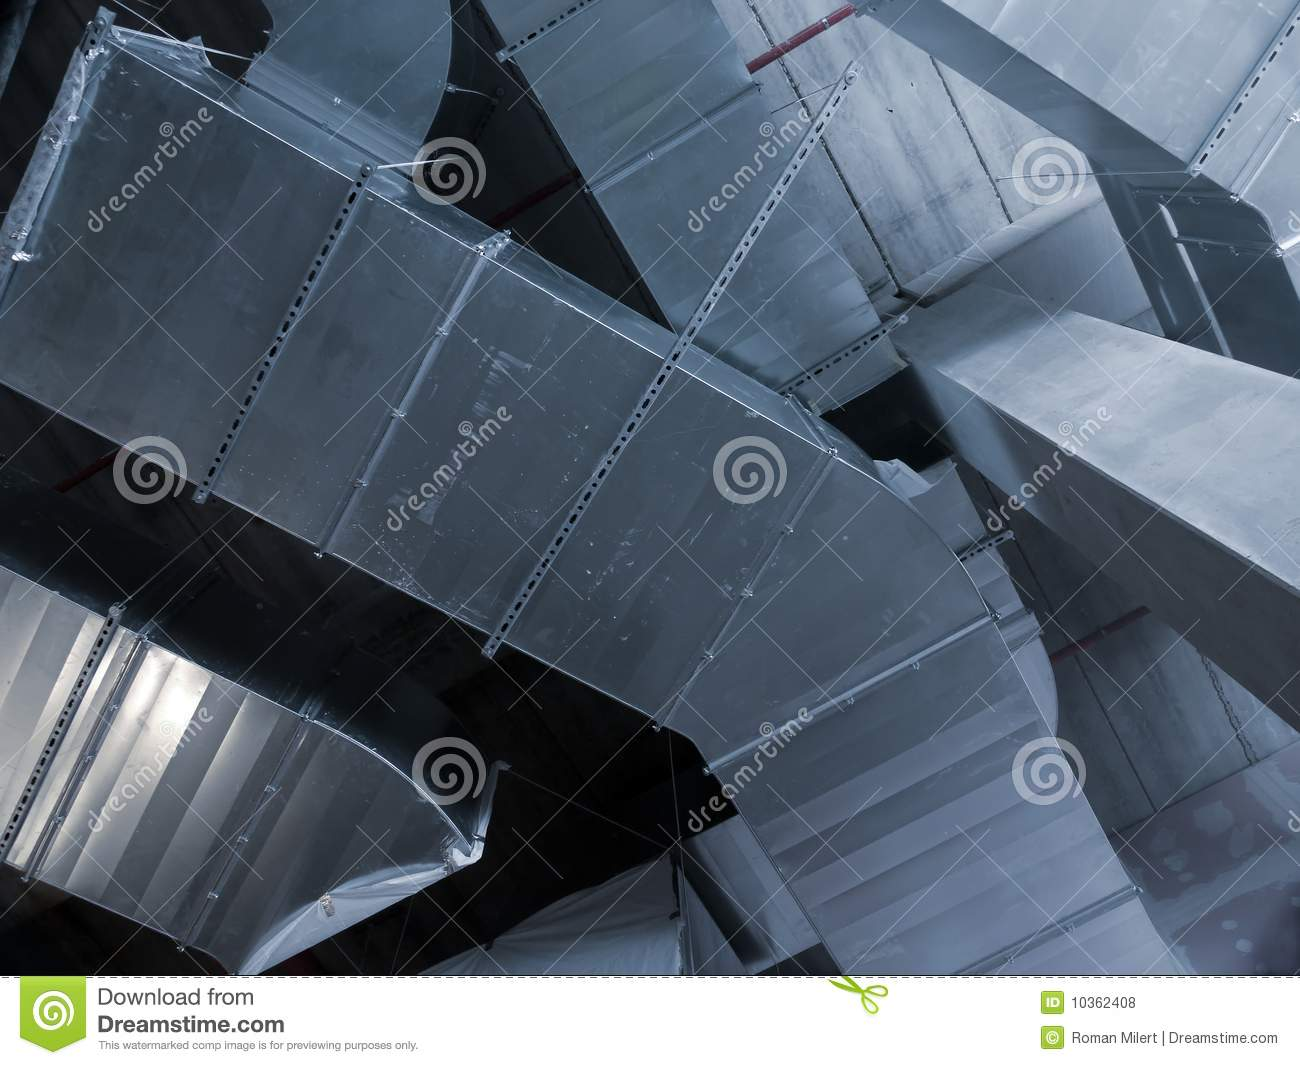 AC pipes stock photo. Image of piping, conditioning, steel - 10362408